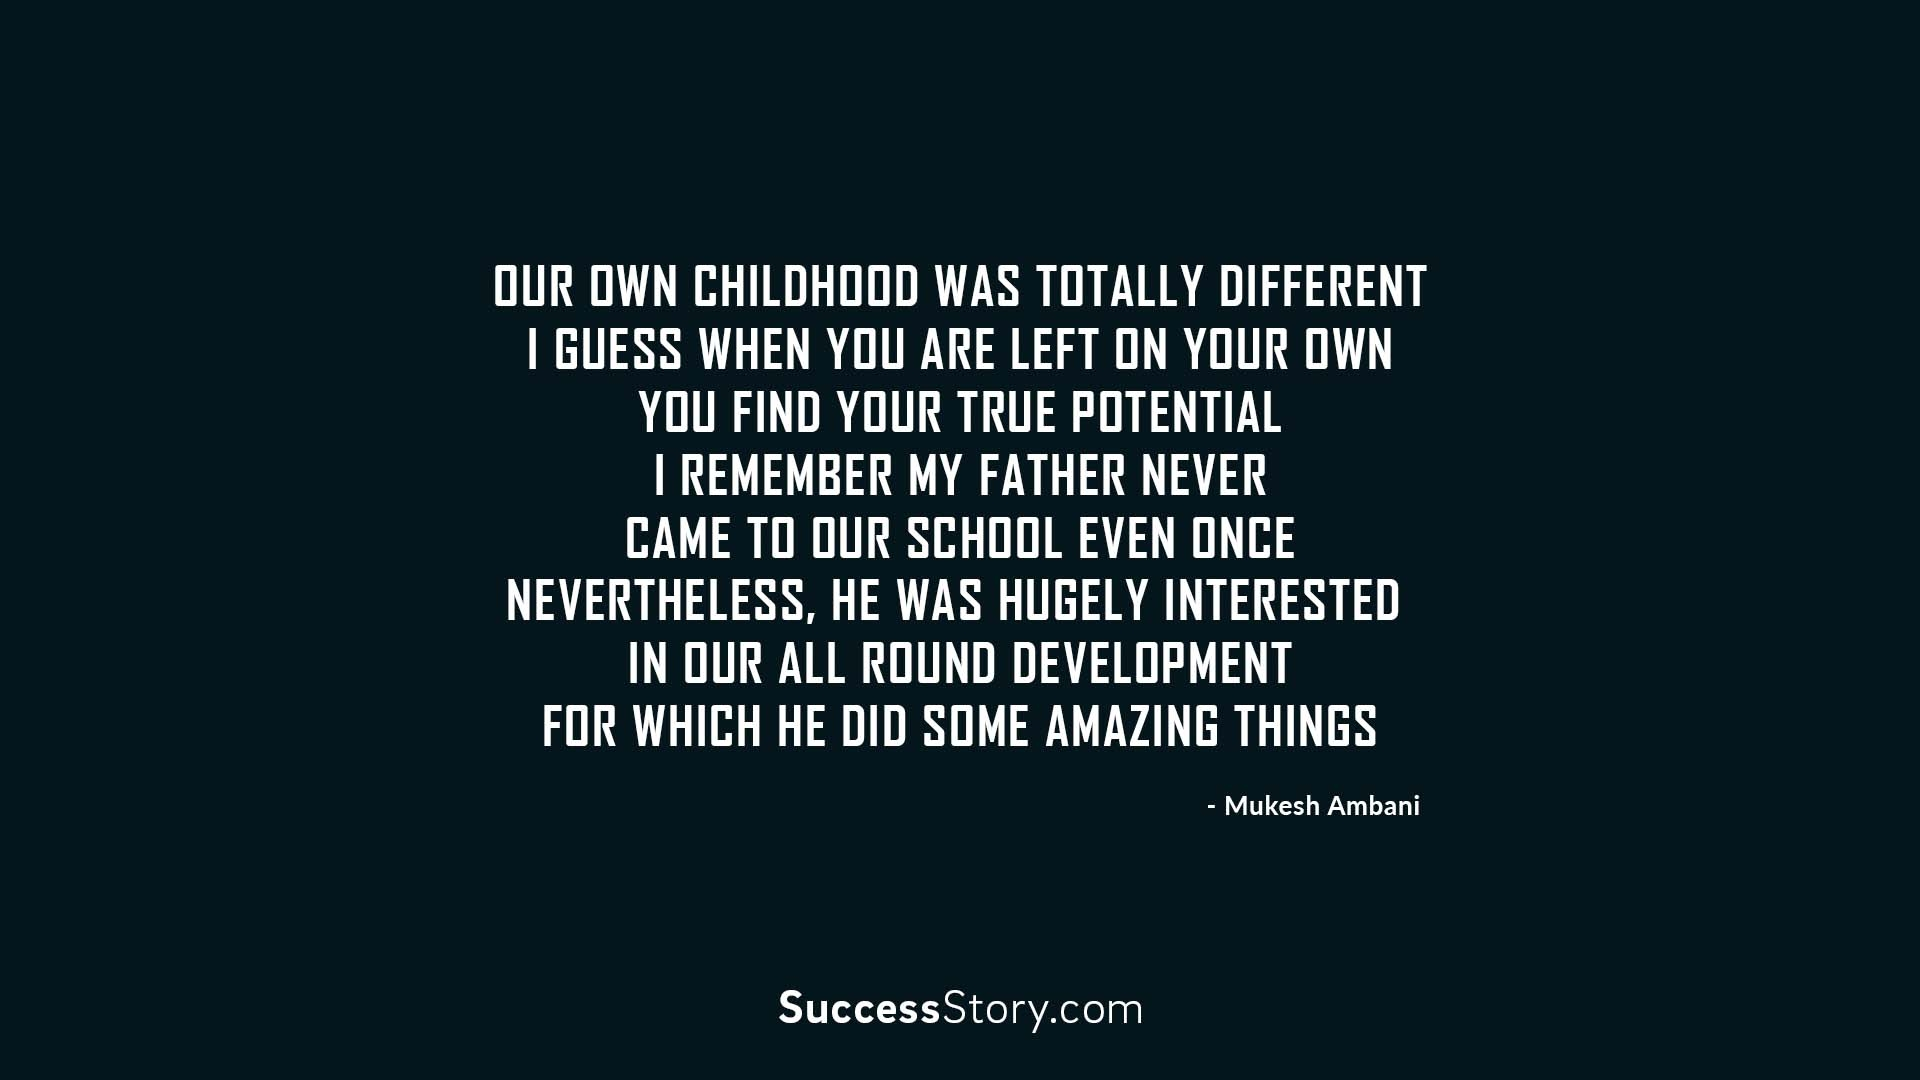 Our own childhood